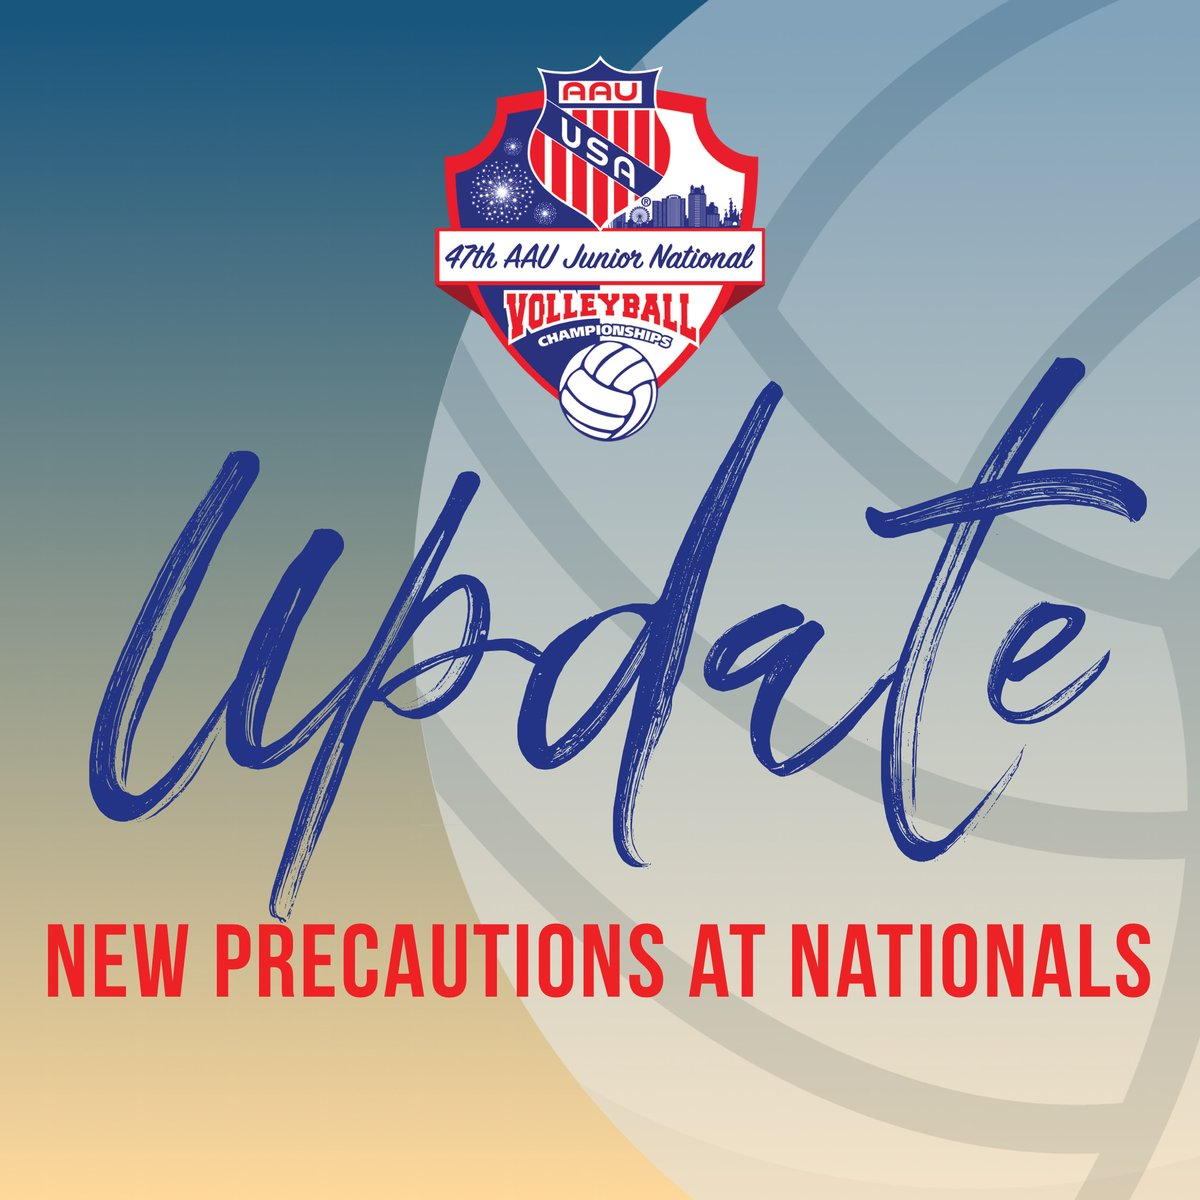 Aau Volleyball On Twitter Update The 2020 Aau Volleyball Nationals Is Still Scheduled As Planned New Precautions Are Being Taken To Keep Our Athletes Coaches And Volunteers Safe While Allowing Our Athletes